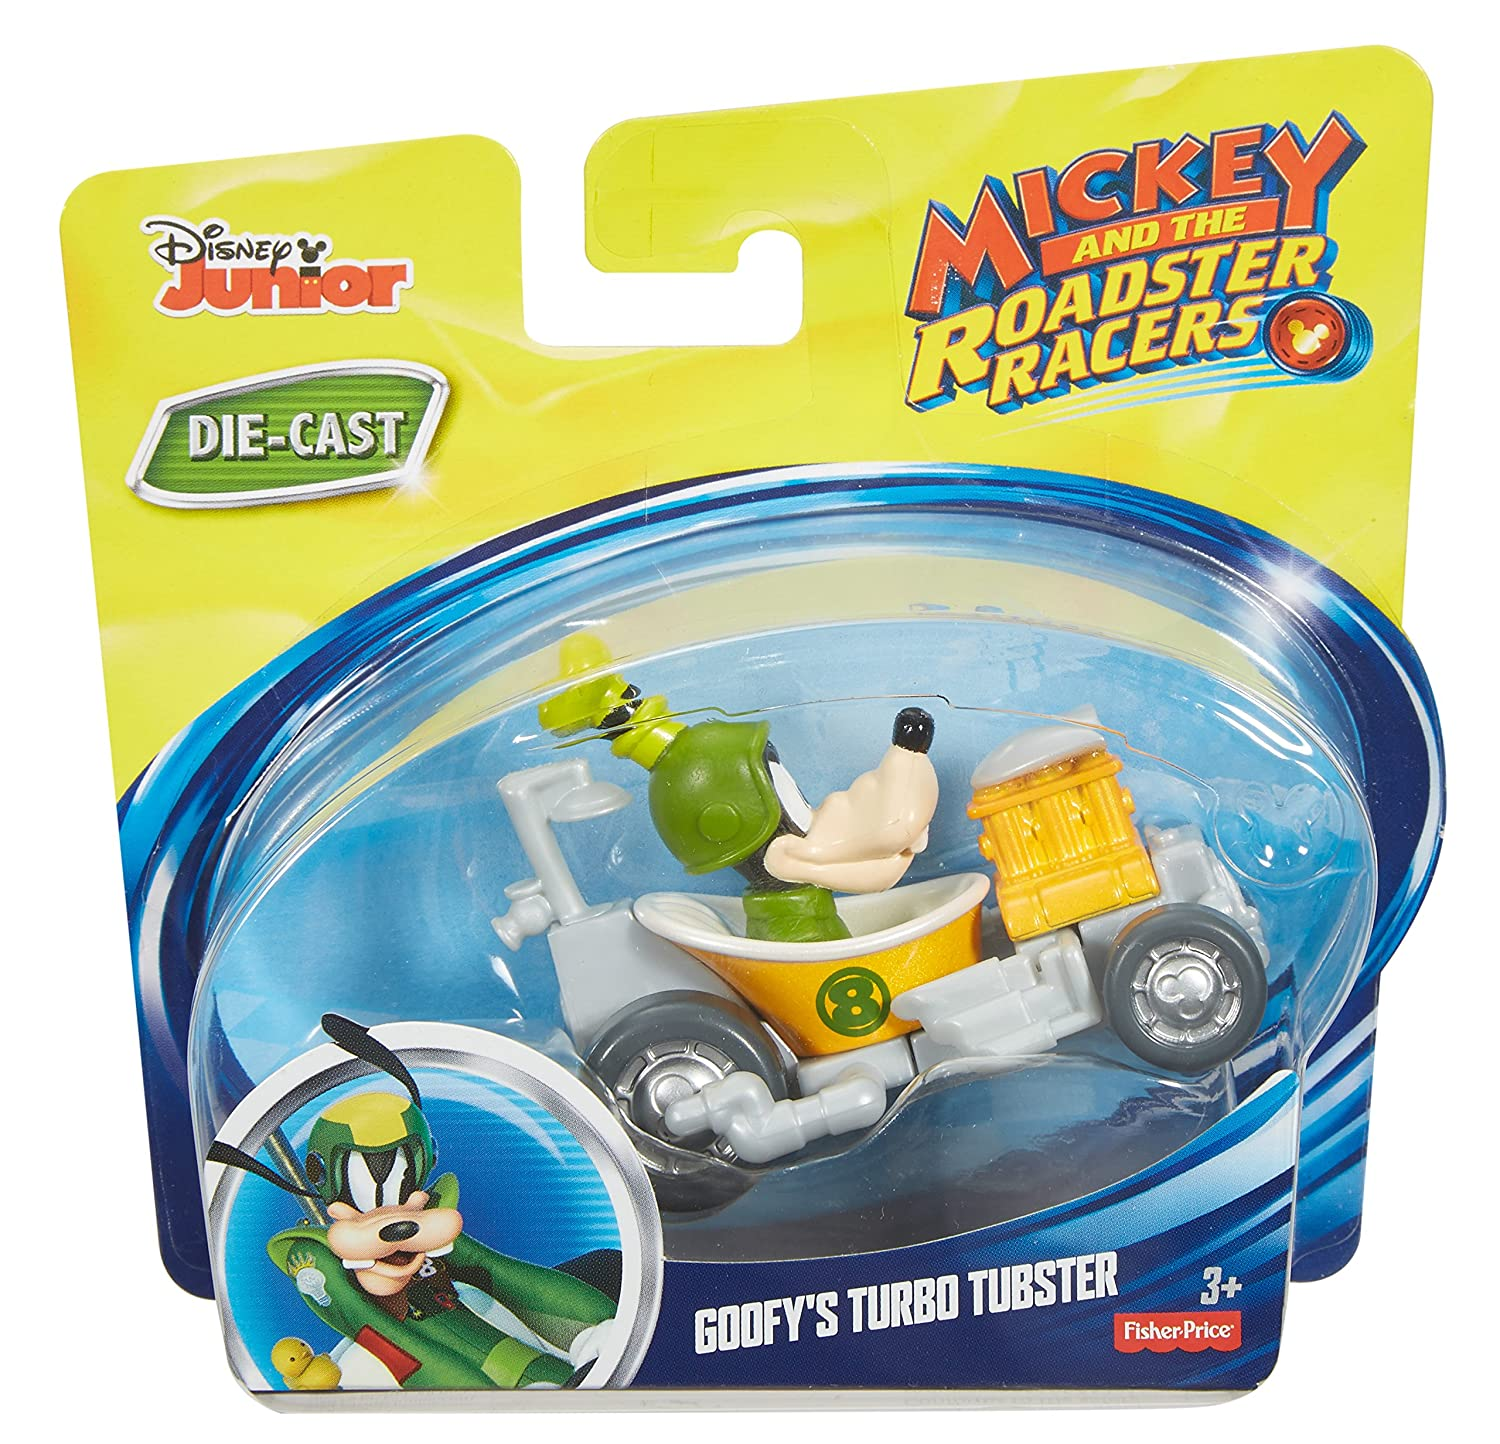 Fisher-Price Disney Mickey and the Roadster Racers - Goofys Turbo Tubster Playset: Amazon.es: Juguetes y juegos